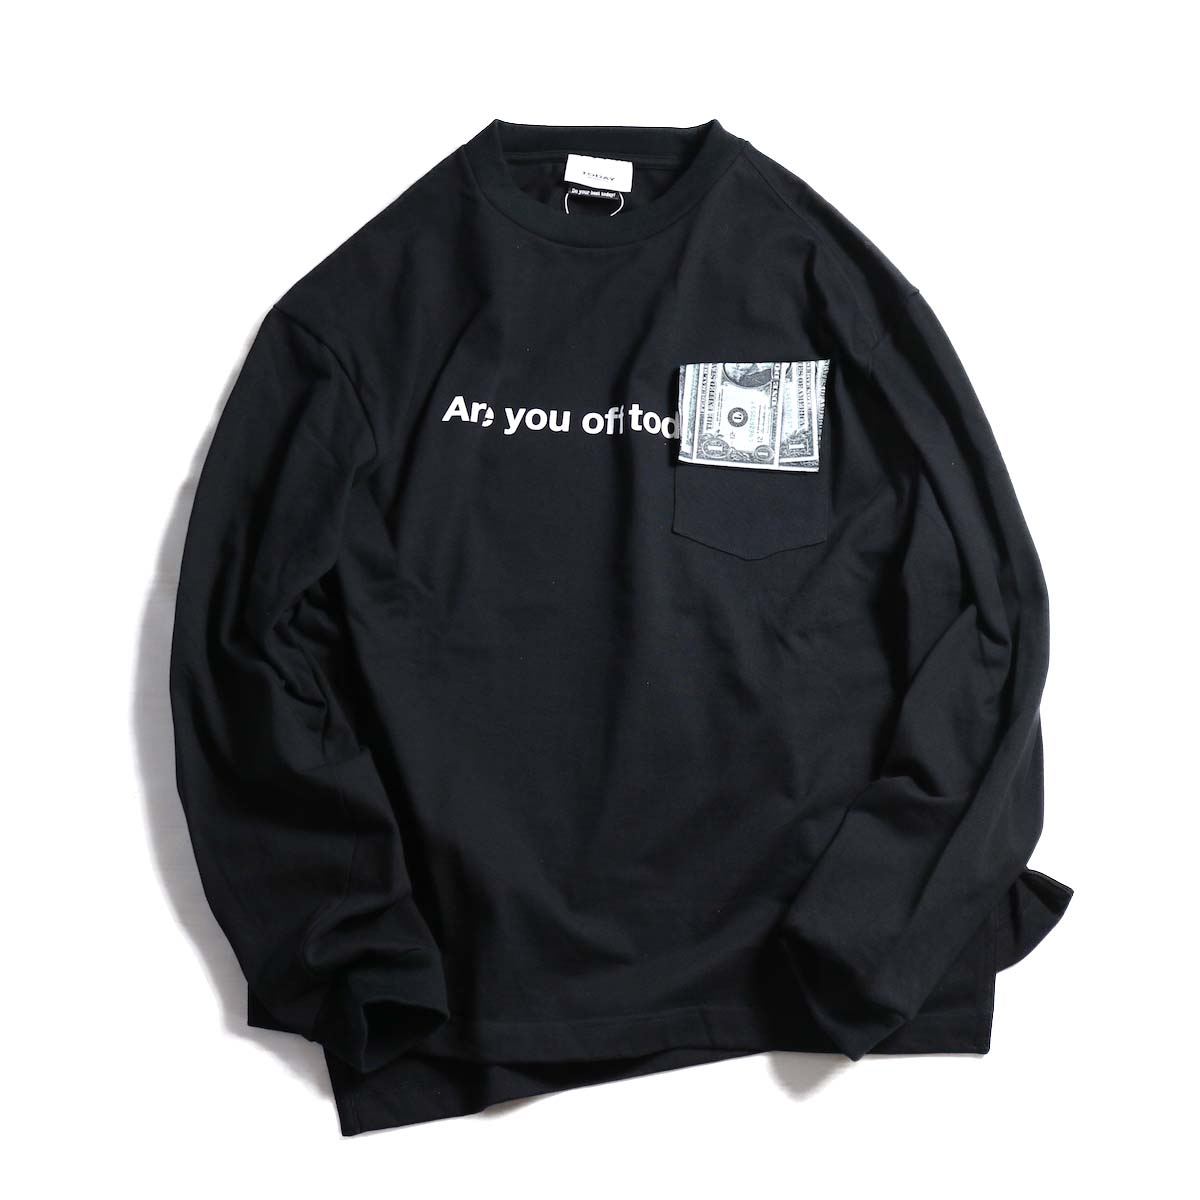 TODAY edition / ARE YOU OFF TODAY? $Pocket tee -Black